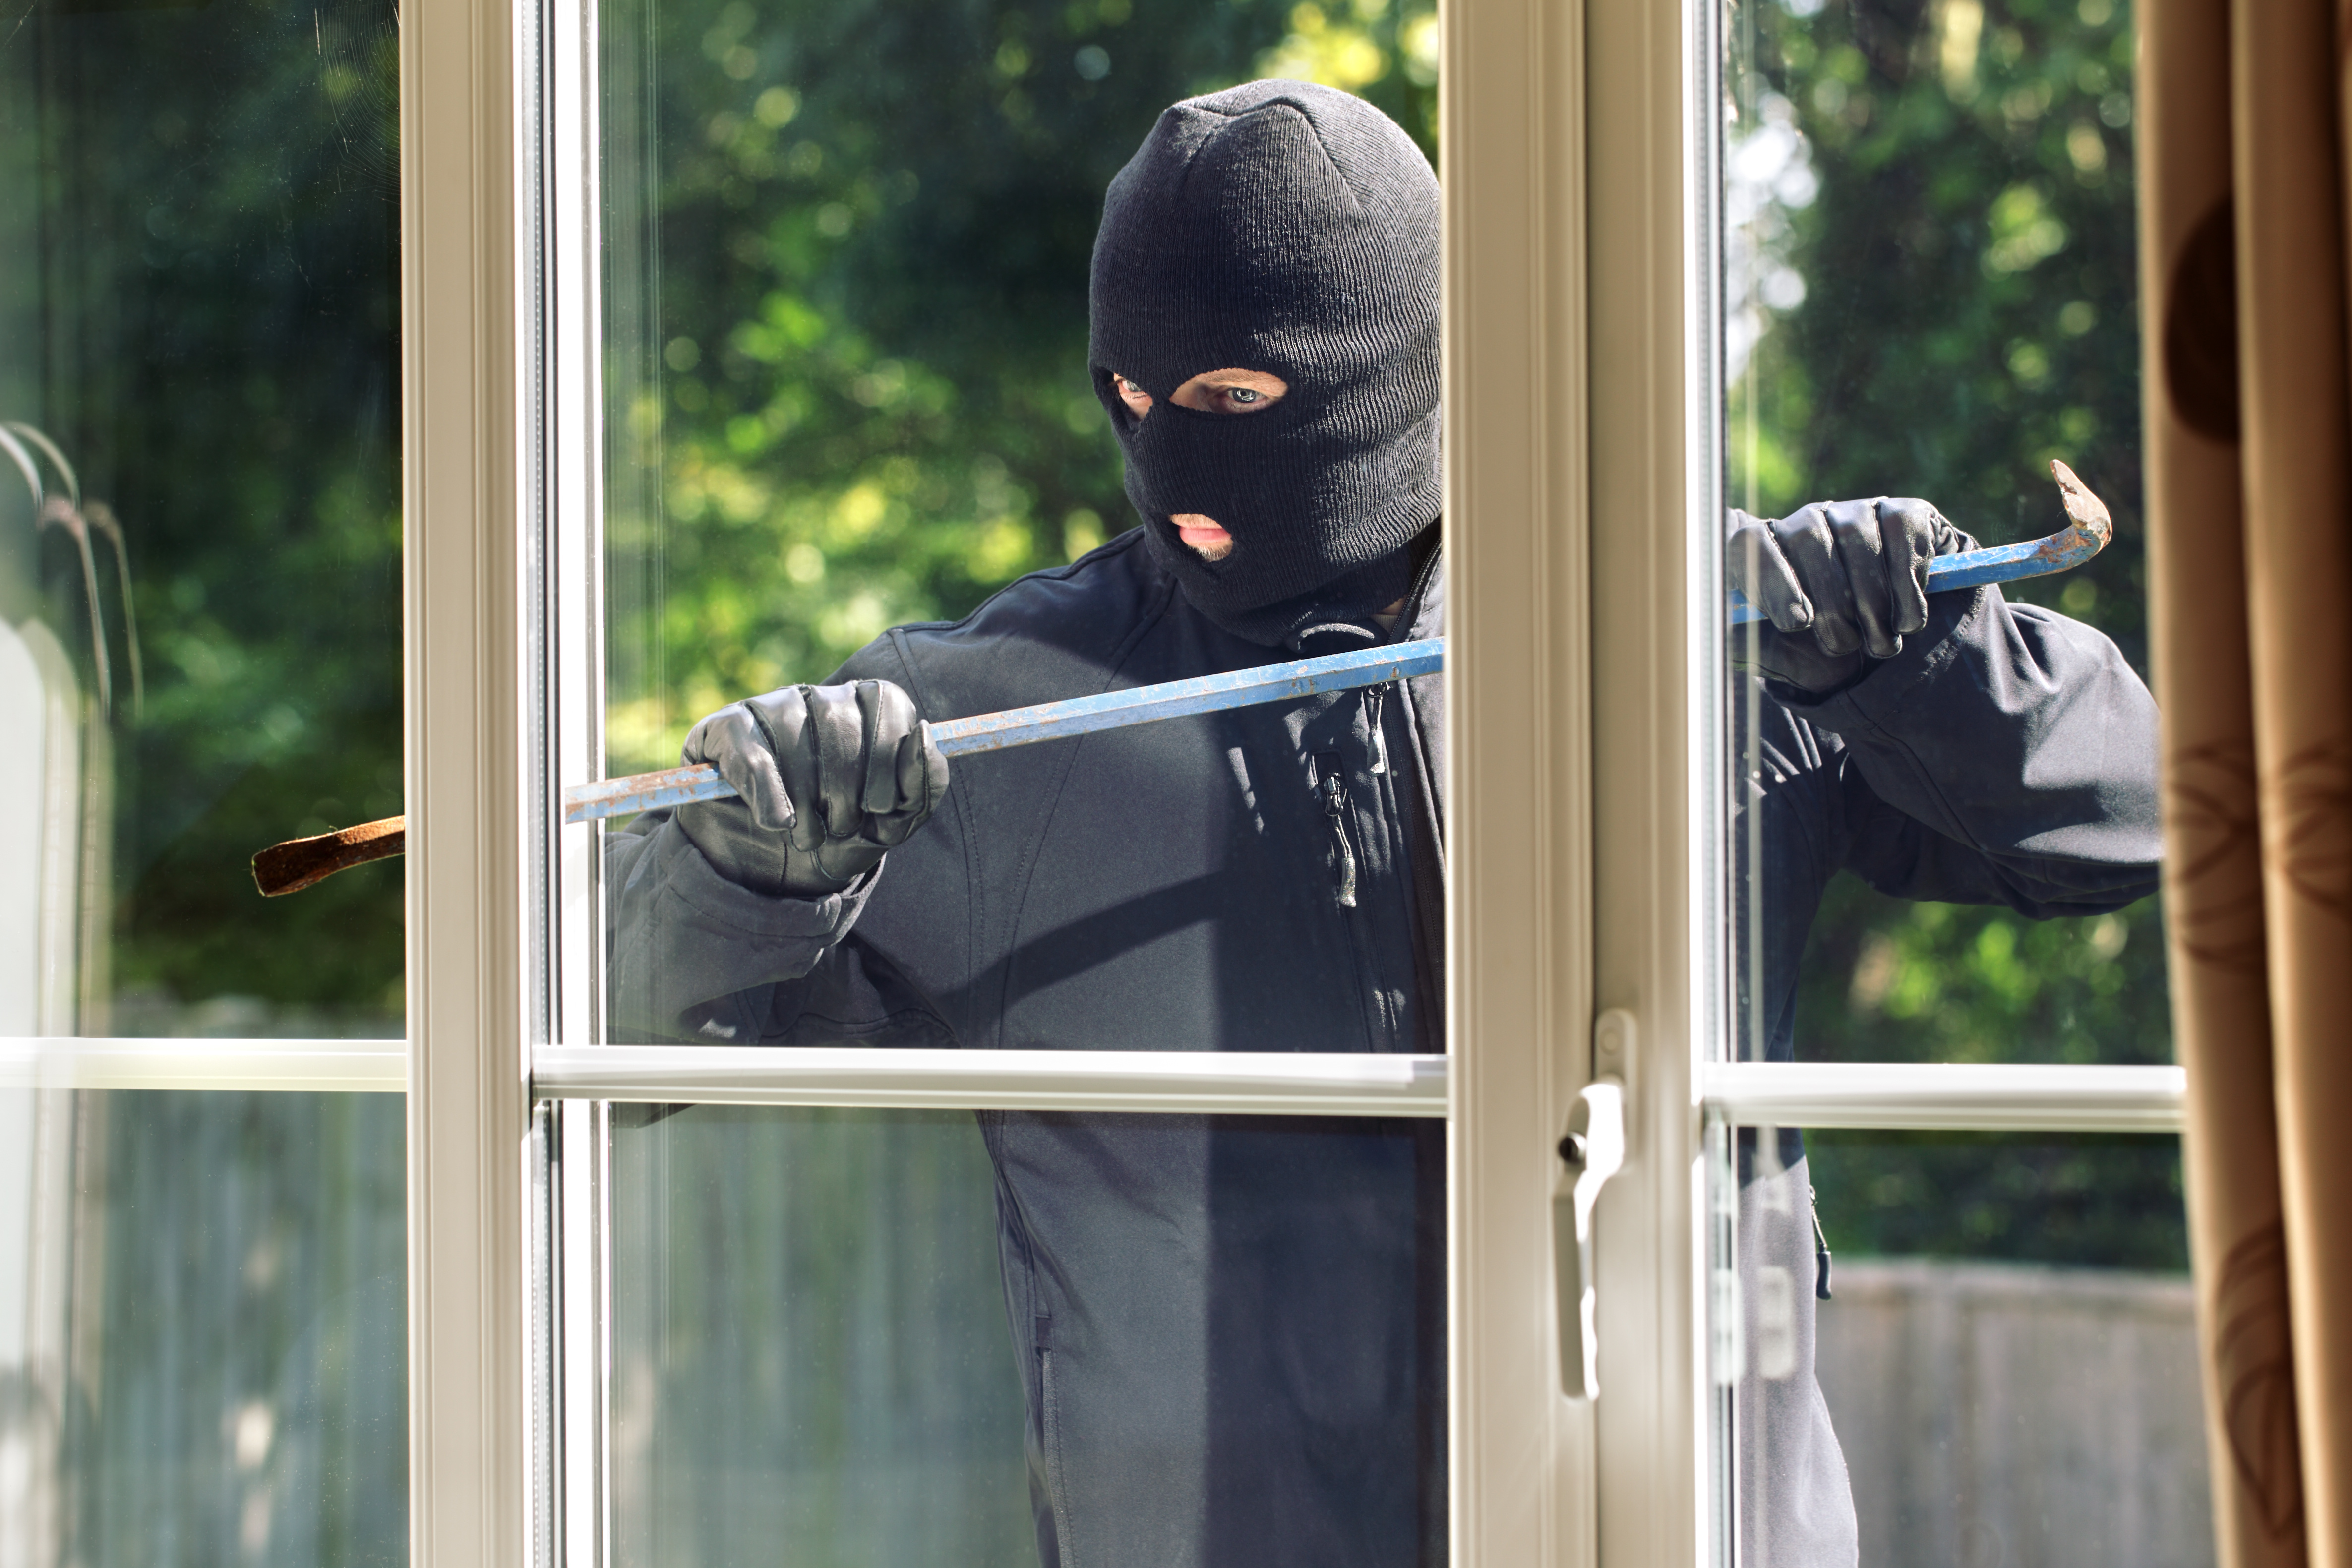 Robber Trying to Break into a House During Your Summer Vacation